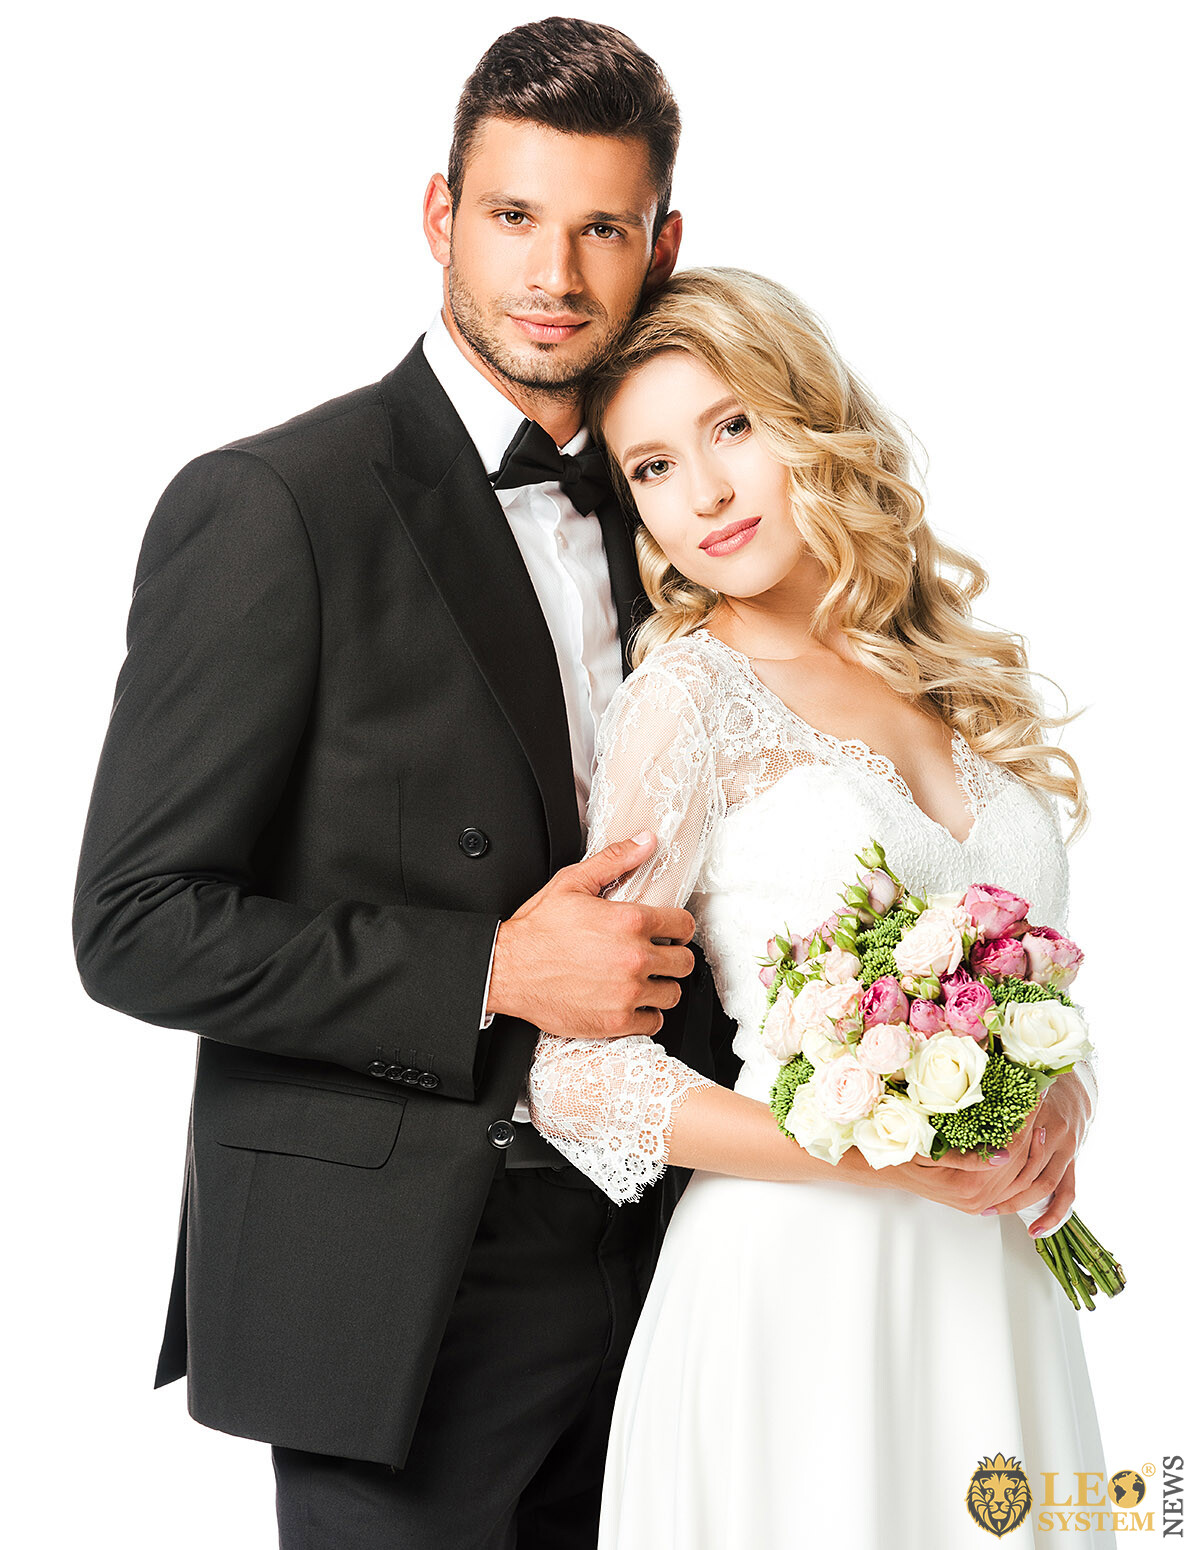 Cute married couple with a bouquet of flowers in their hands